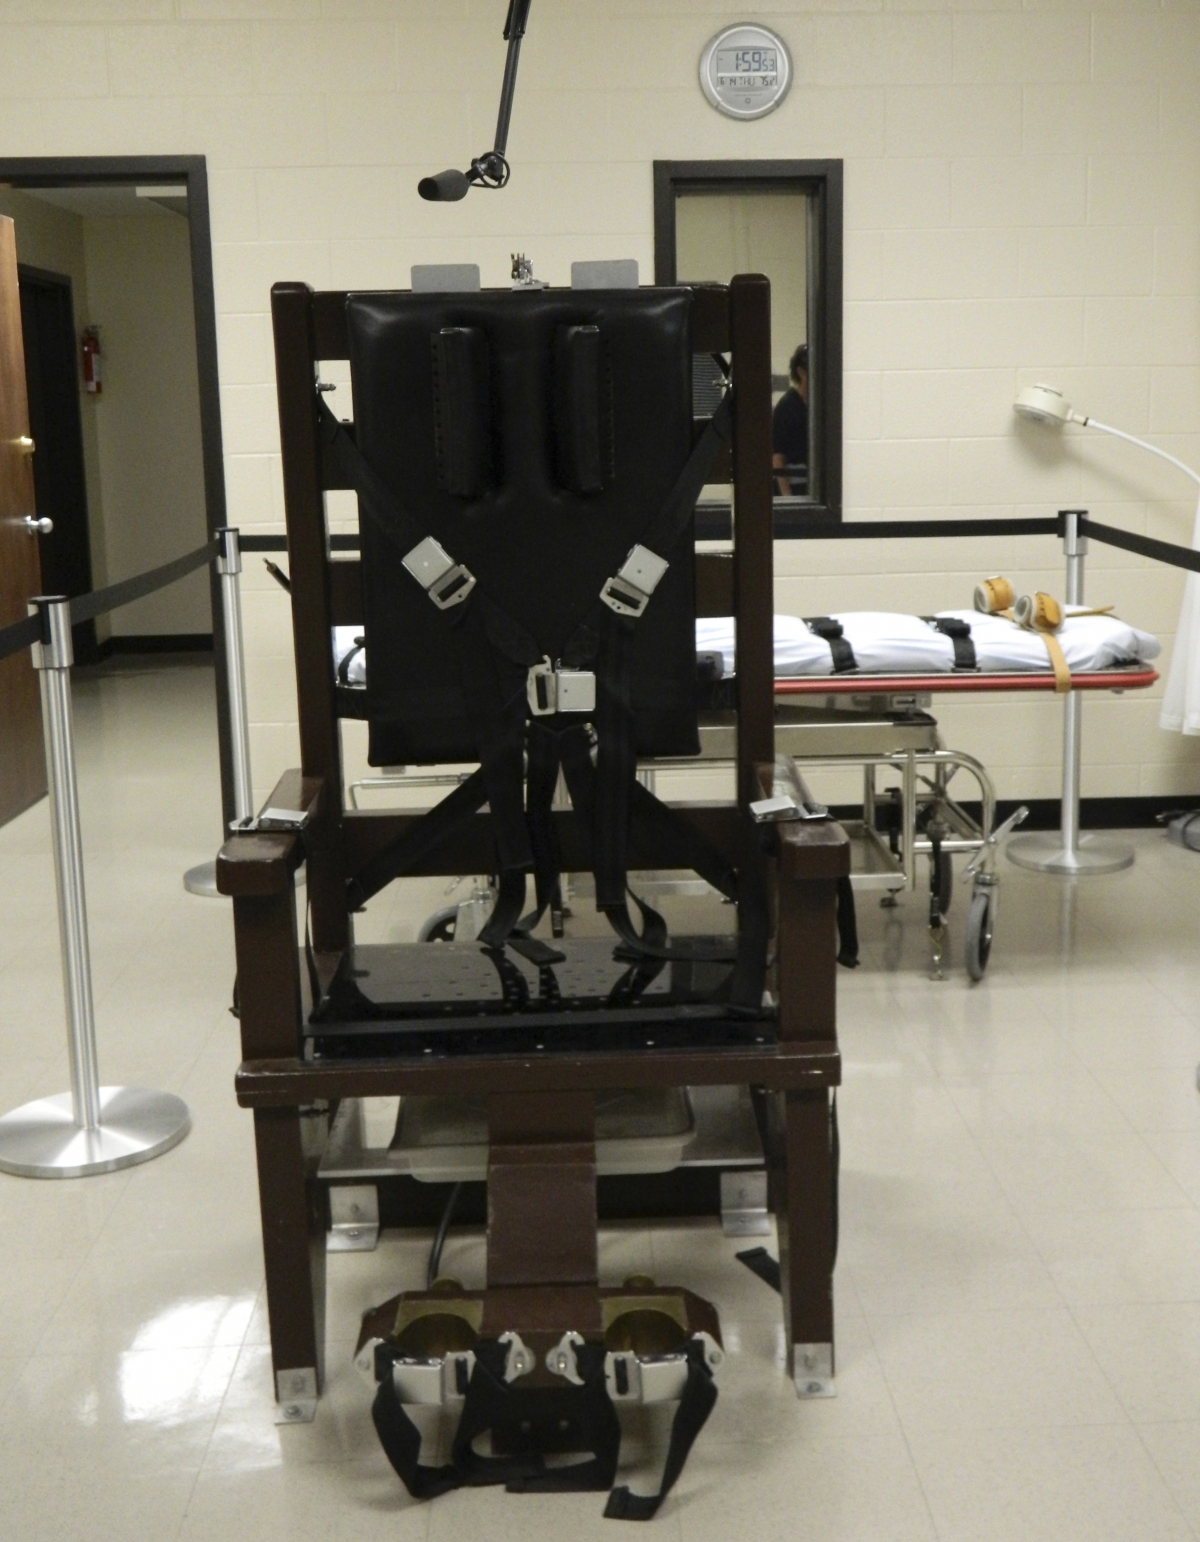 An electric chair, nicknamed